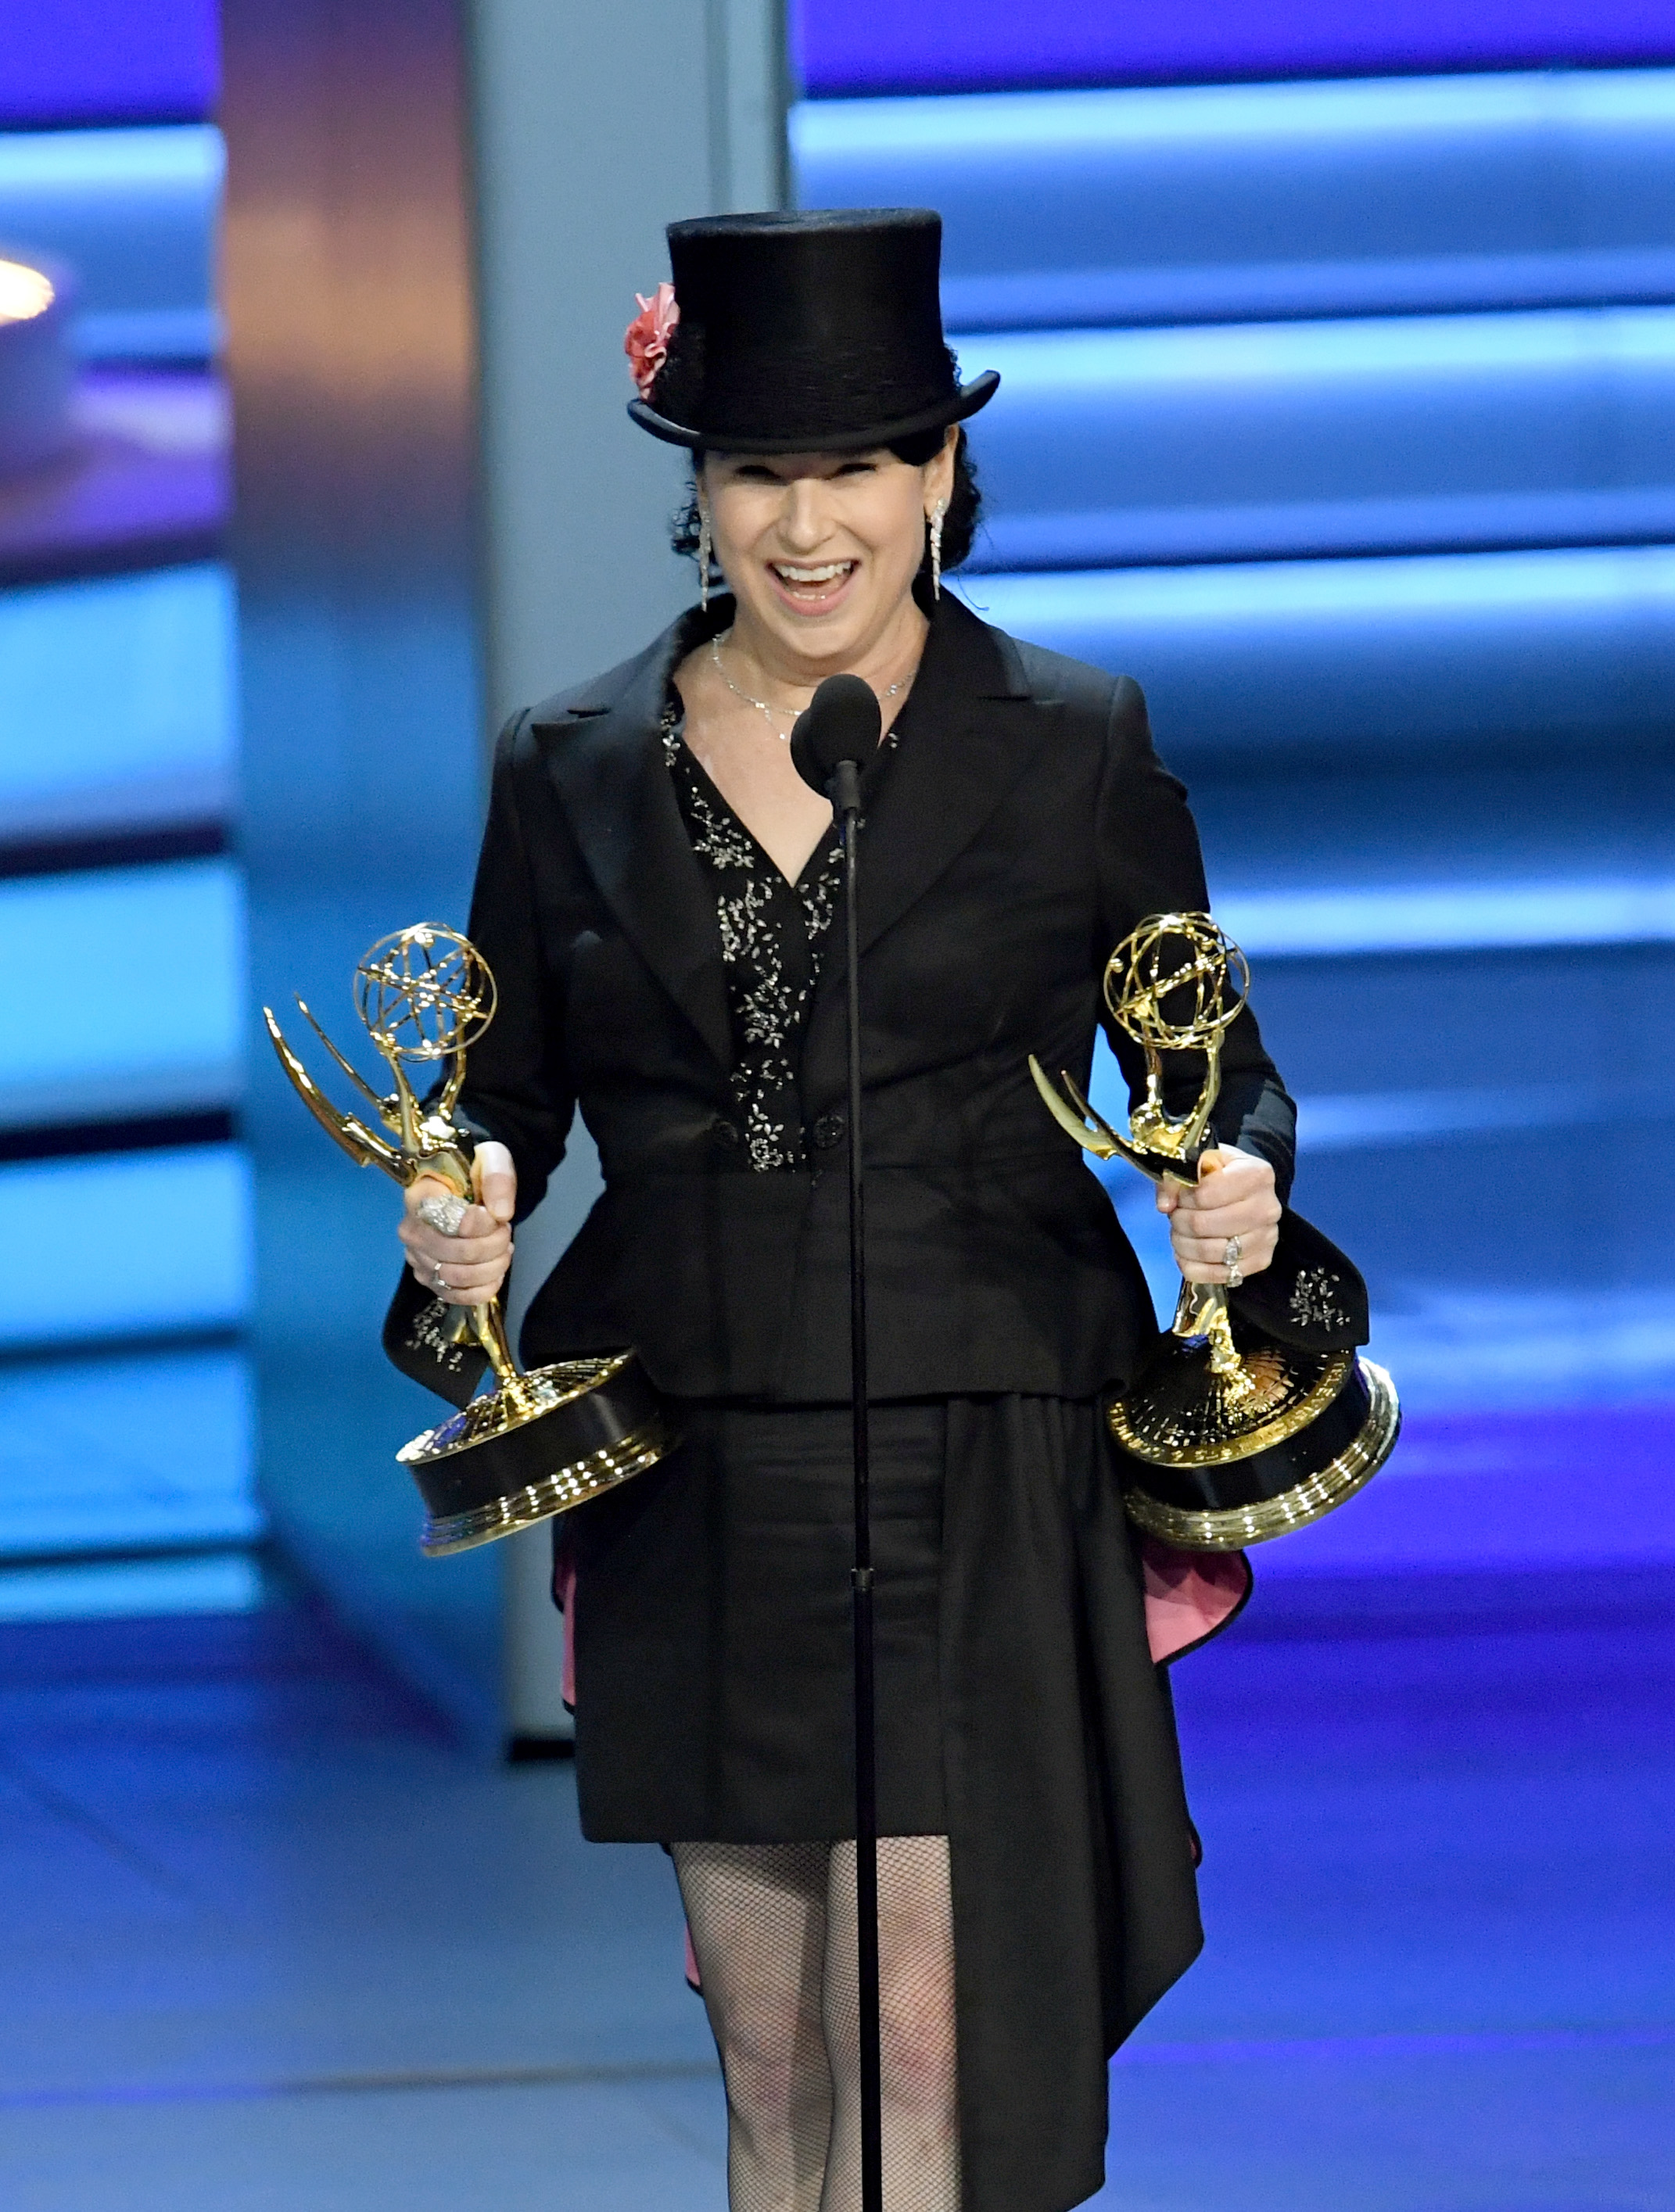 Amy Sherman-Palladino accepts the Outstanding Directing for a Comedy Series award for 'The Marvelous Mrs. Maisel' onstage during the 70th Emmy Awards at Microsoft Theater on September 17, 2018 in Los Angeles, California.